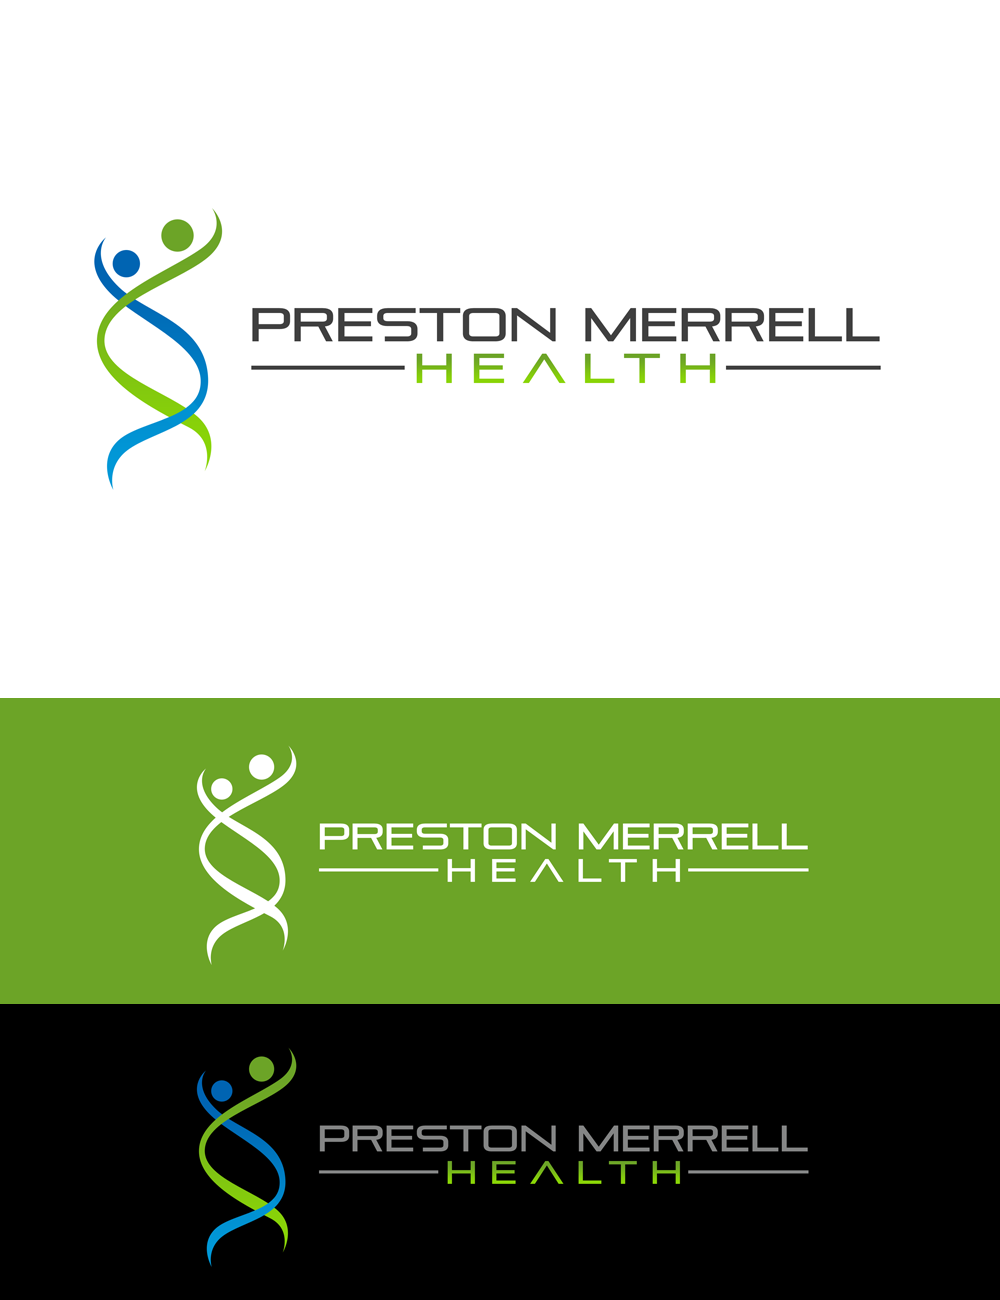 Logo Design by Robert Turla - Entry No. 264 in the Logo Design Contest Creative Logo Design for Preston Merrell Health.